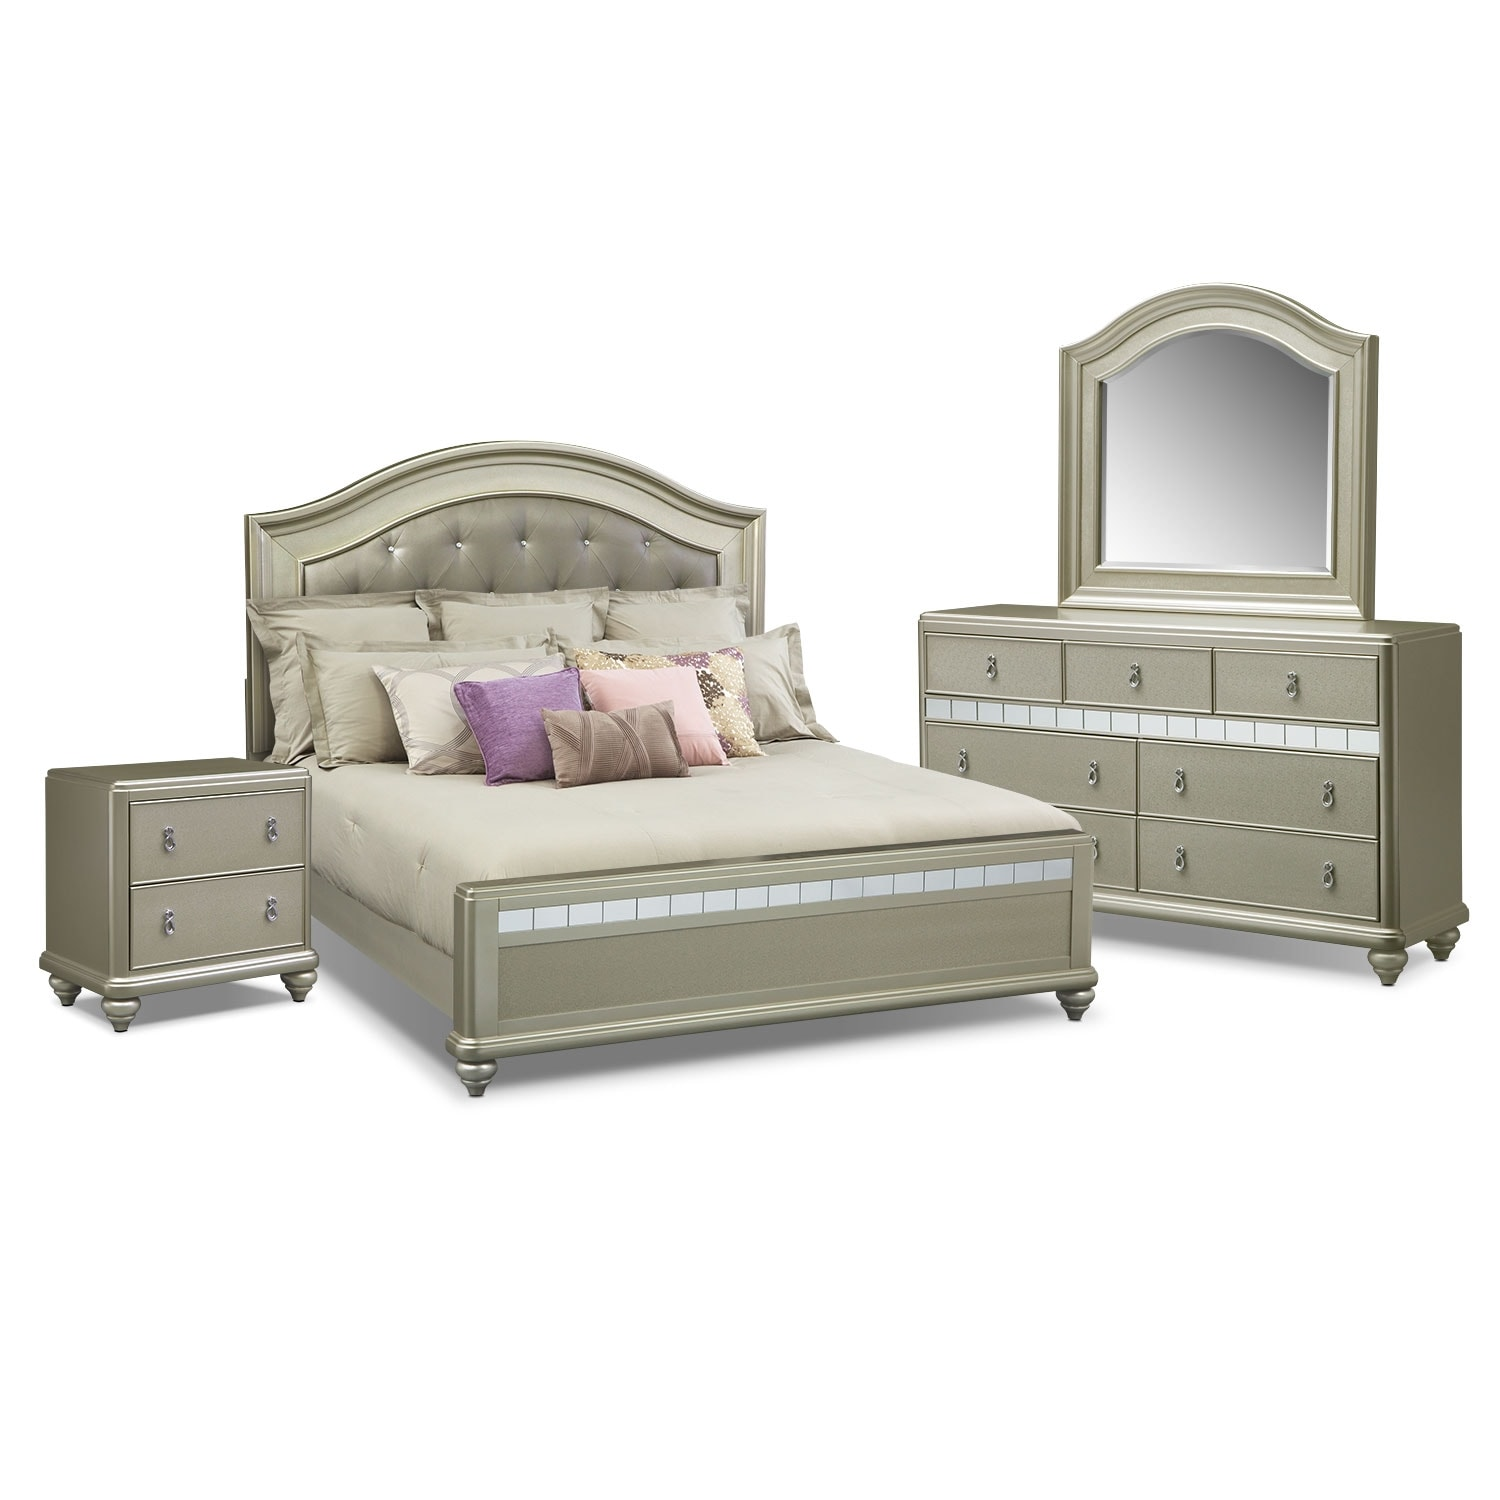 Serena King 6-Piece Bedroom Set- Platinum